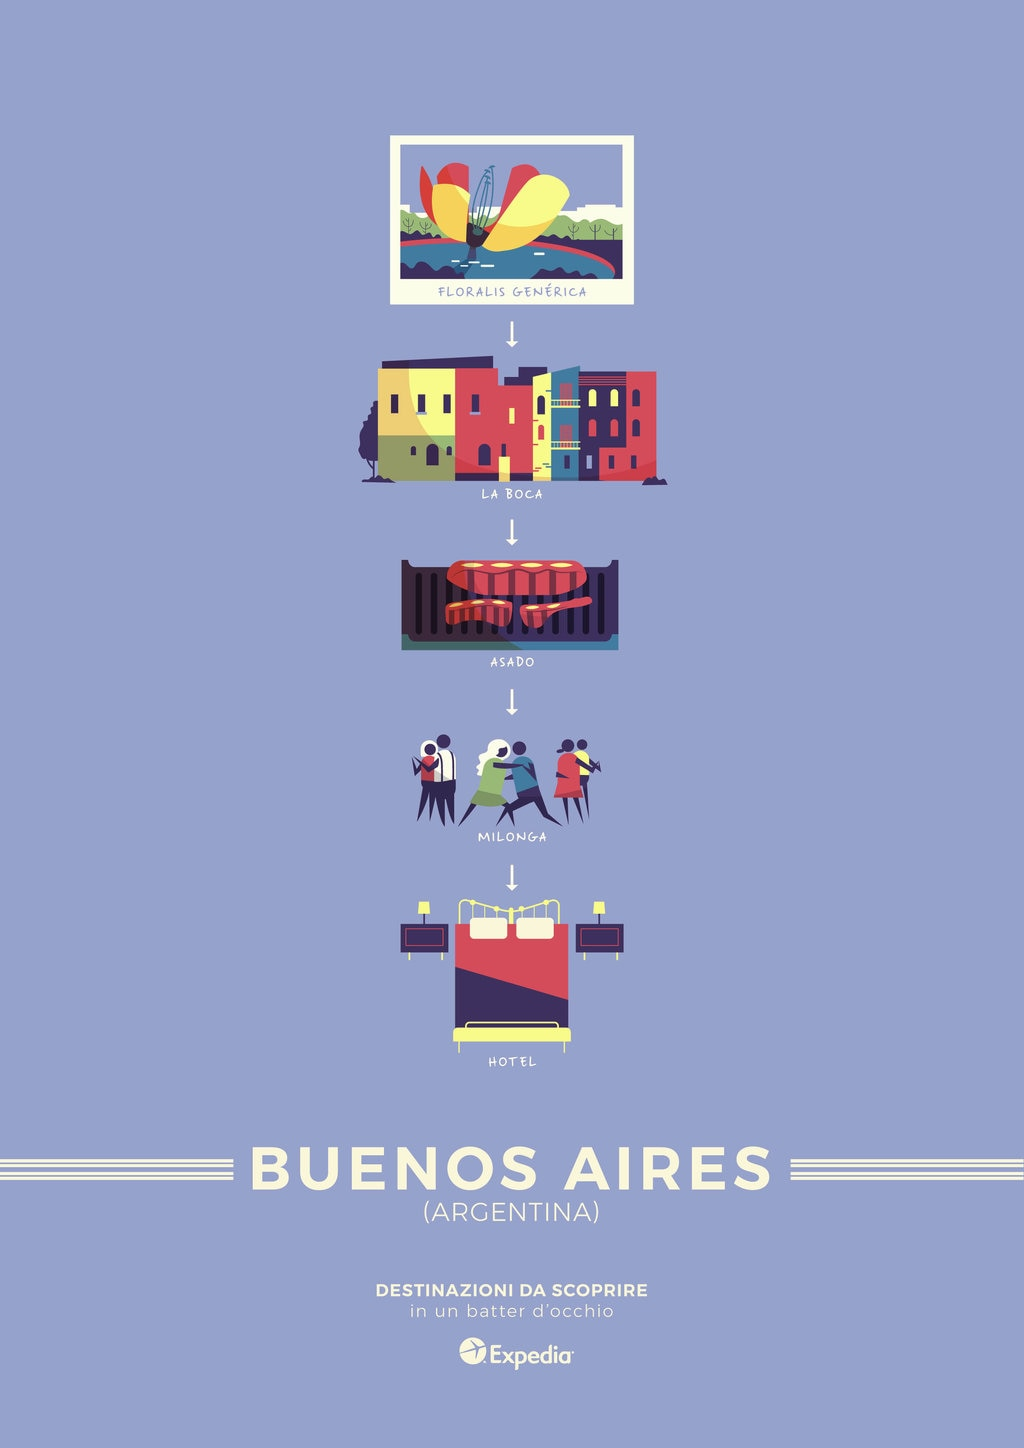 2._Buenos_Aires.jpg?1542745911